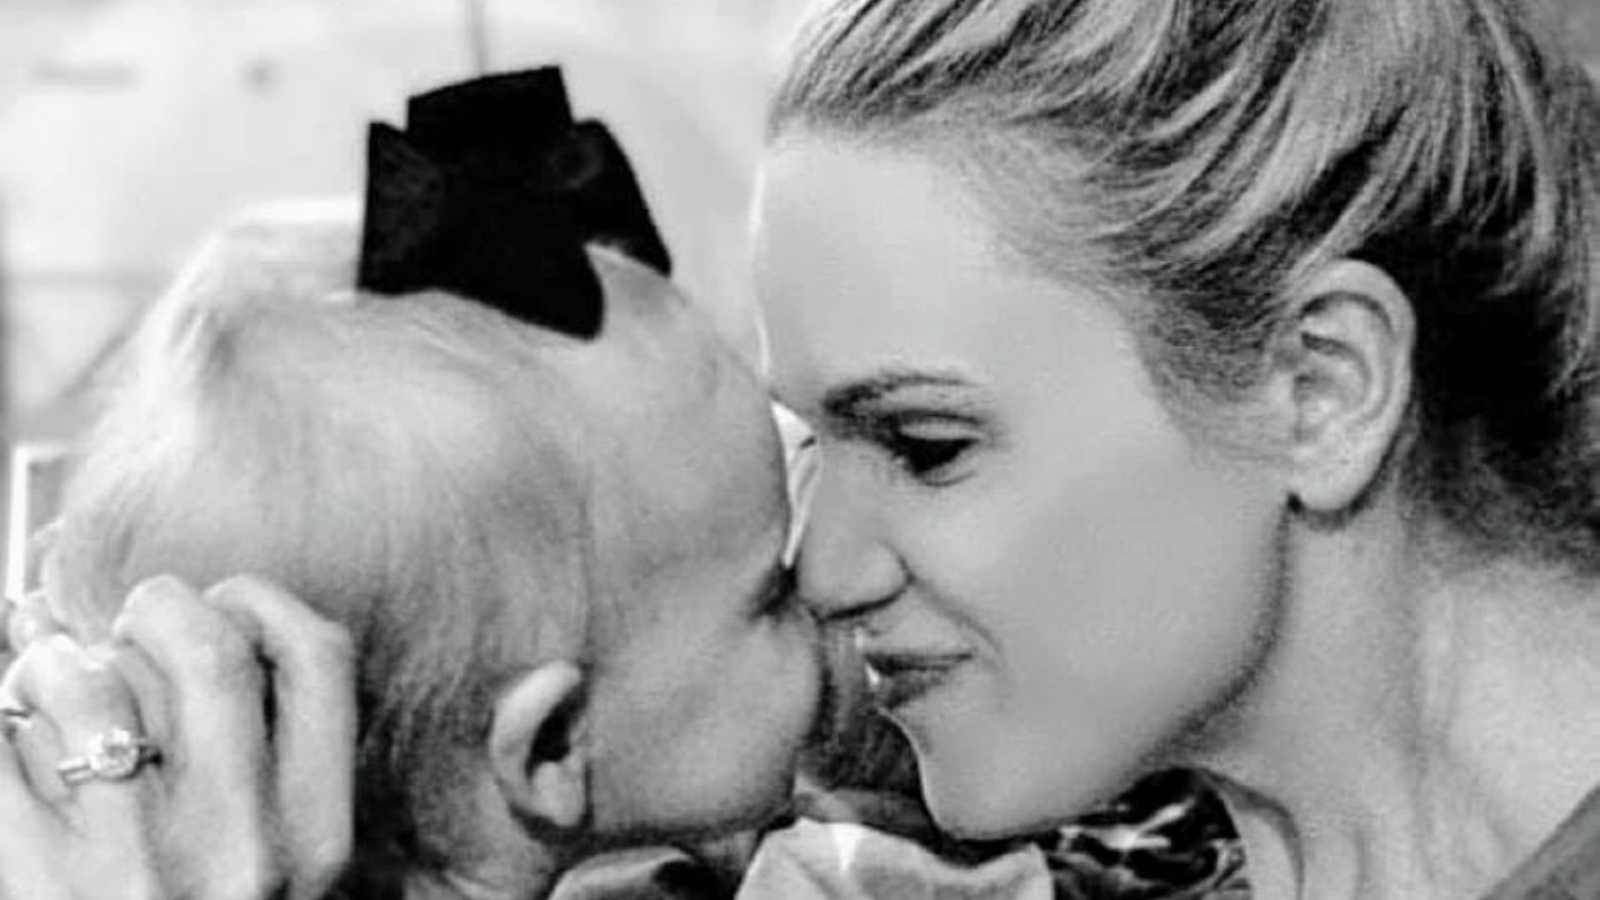 Girl mom and toddler daughter rubs noses together and smile during playtime